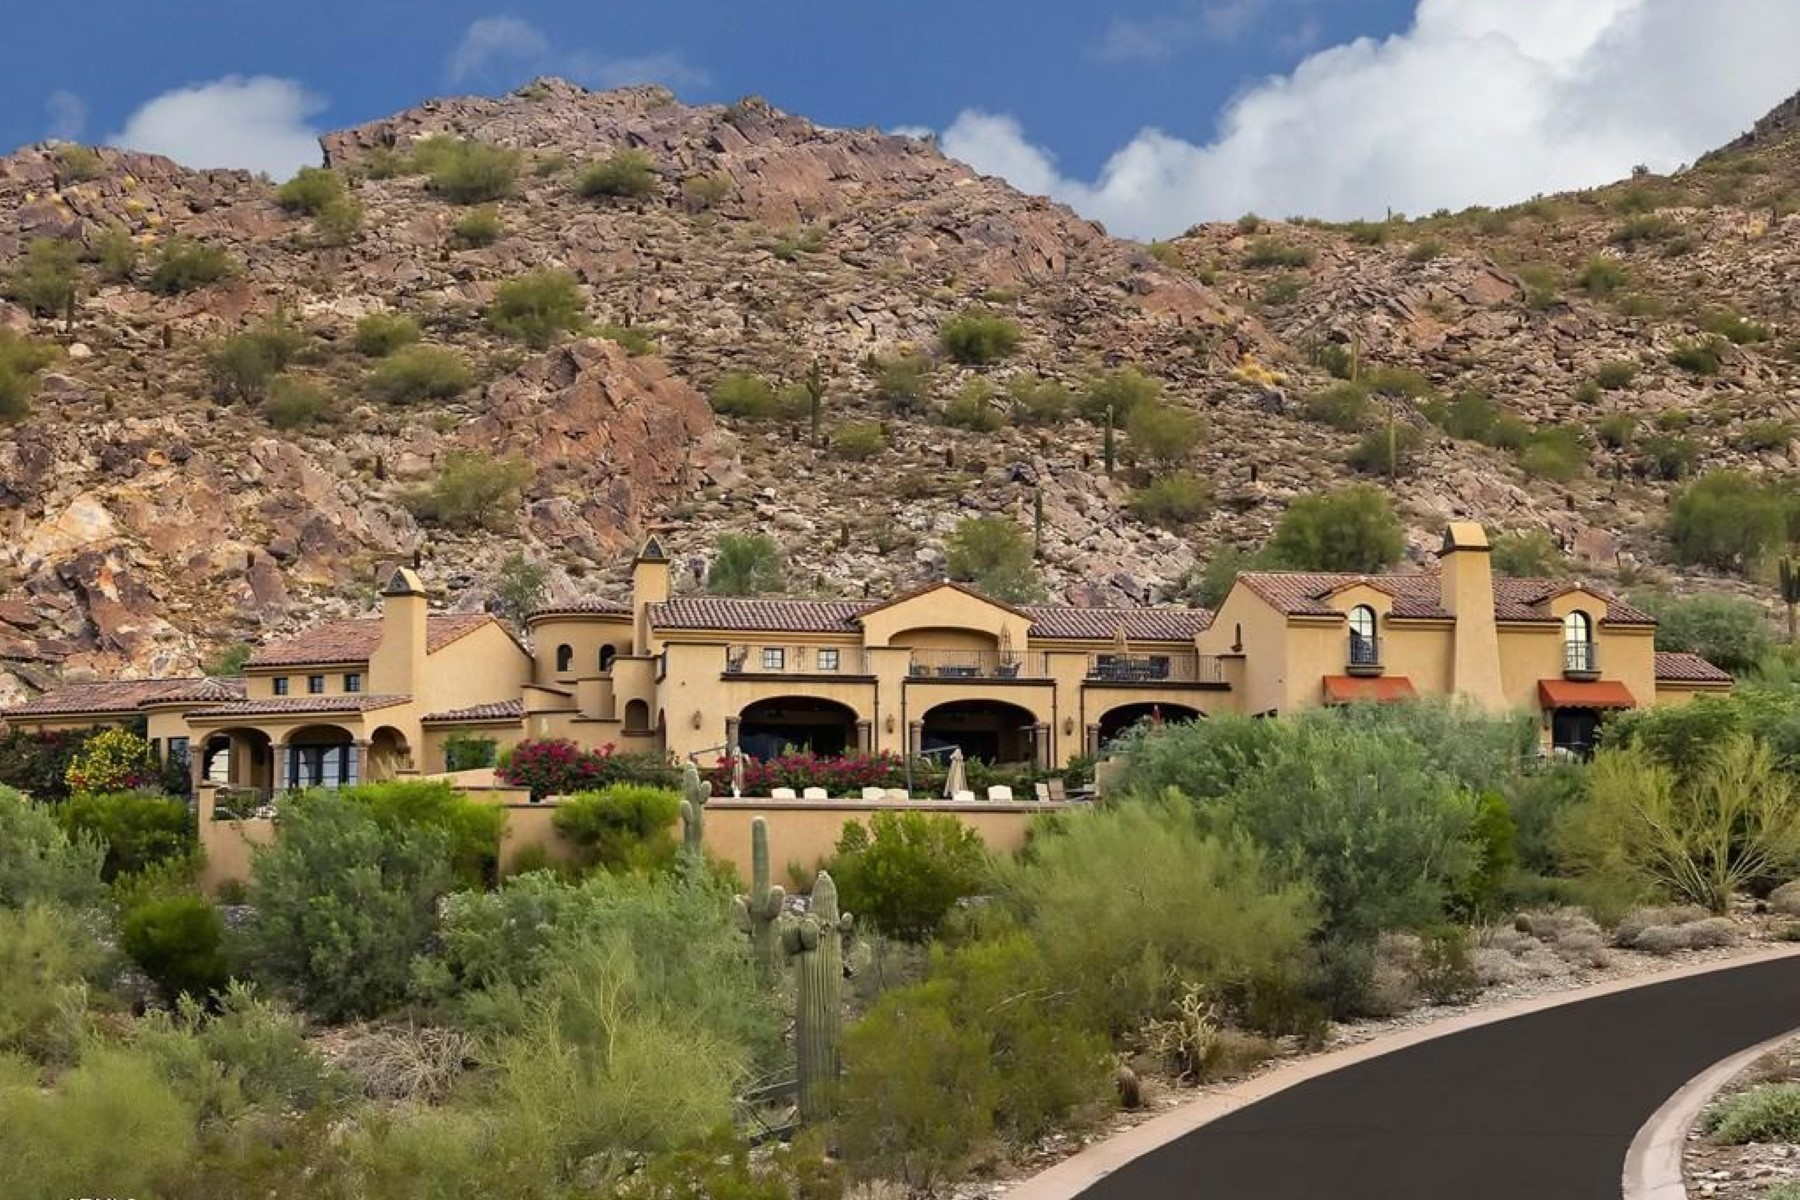 Single Family Home for Sale at Exquisite masterpiece is consumed with elegance and is nestled on an 8 acre lot 20914 N 104th St Scottsdale, Arizona 85255 United States